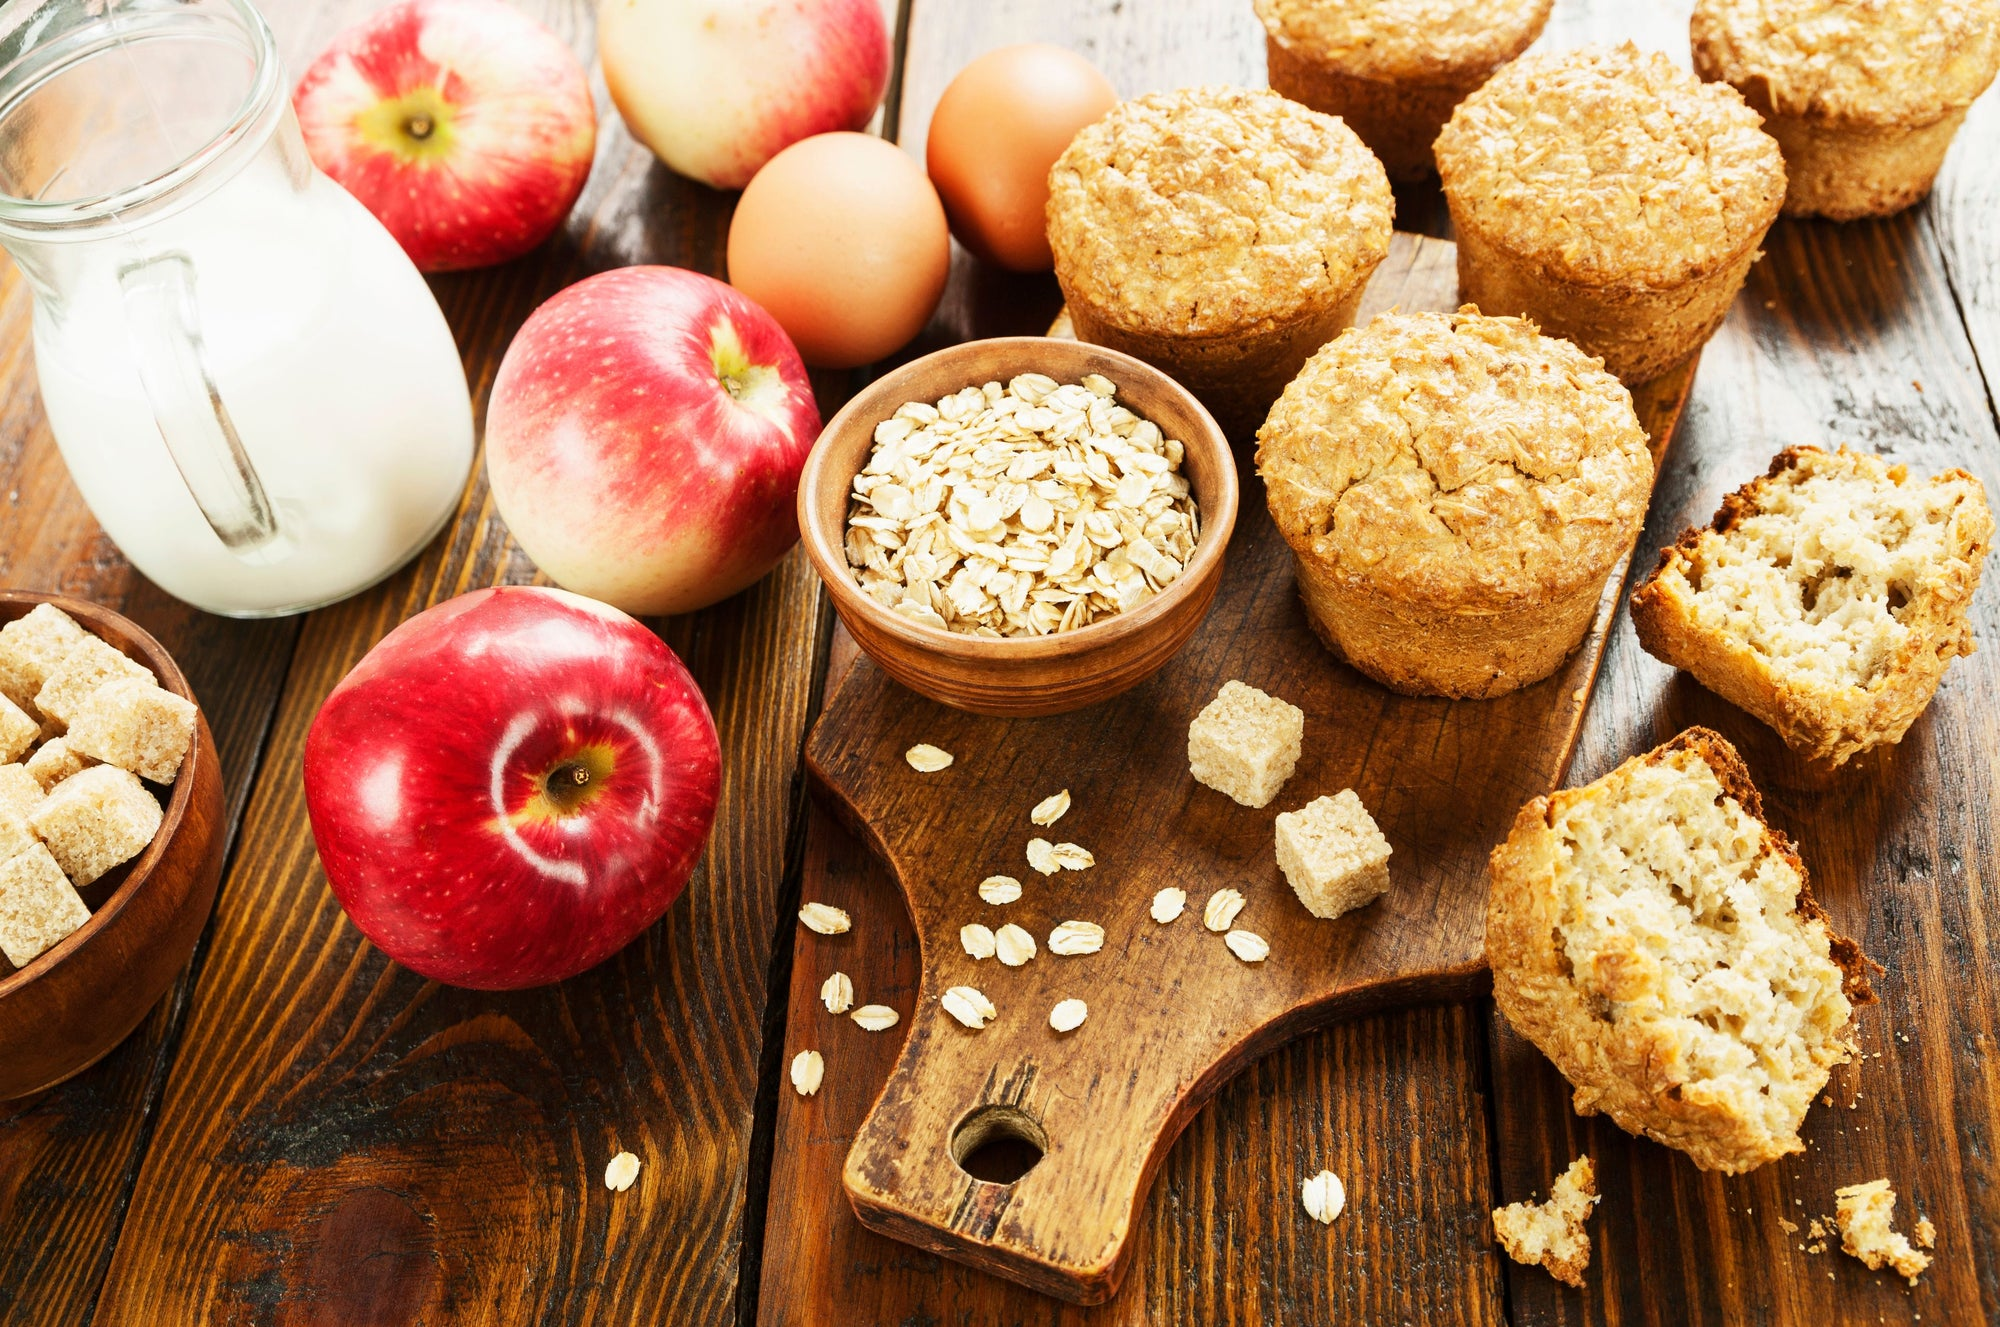 Gingerbread and Applesauce Oat Muffins